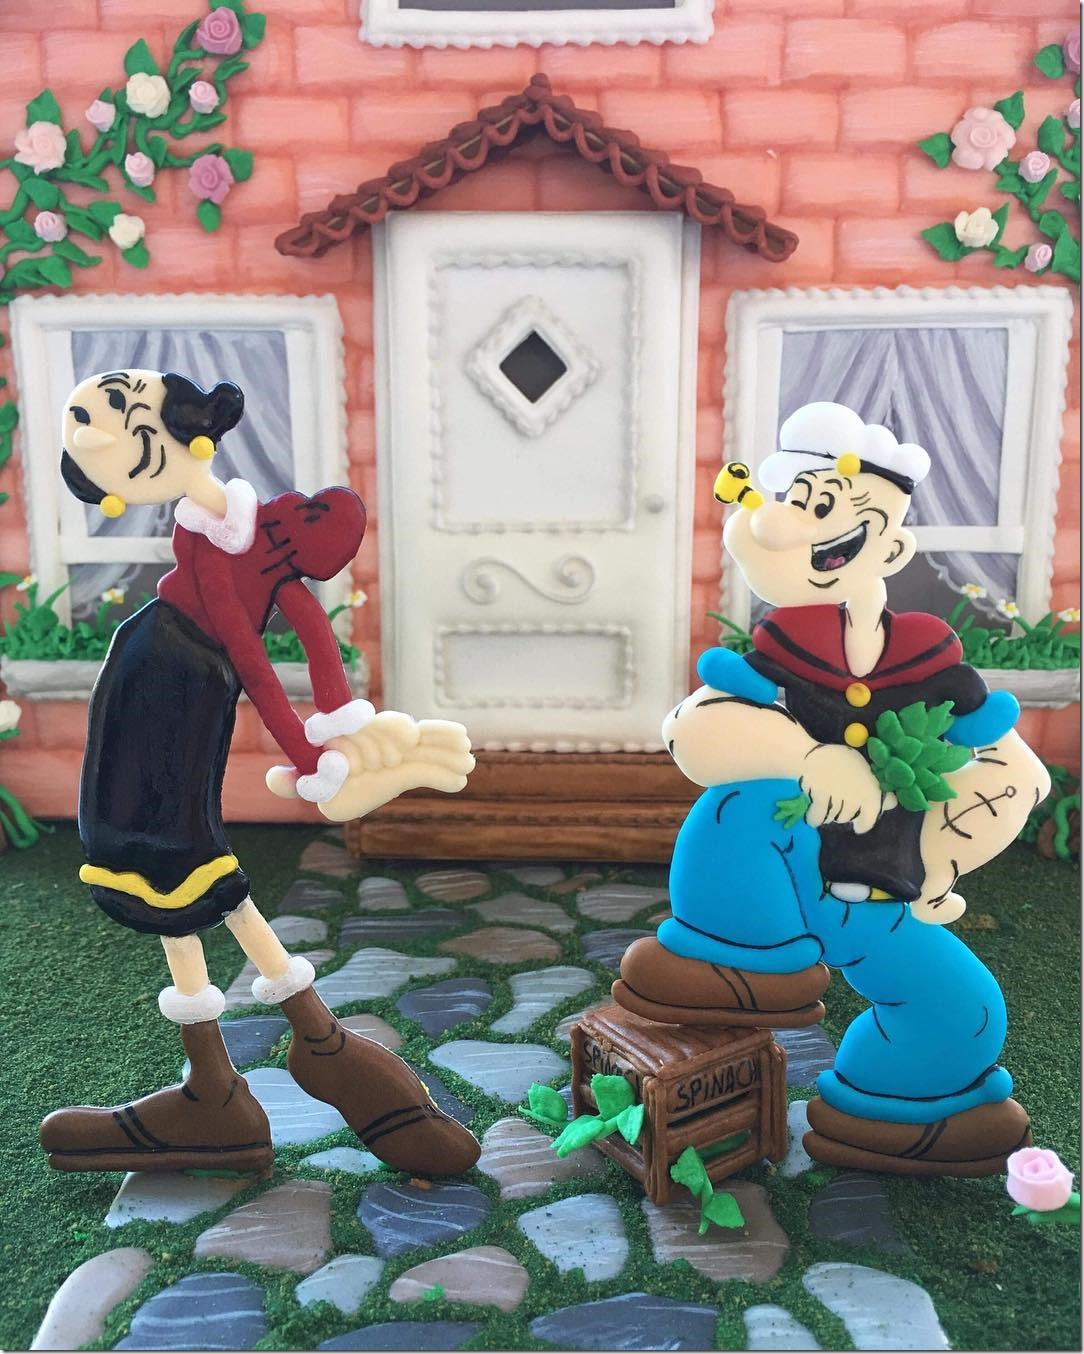 Royal Icing Figures of Popeye & Olive Oyl